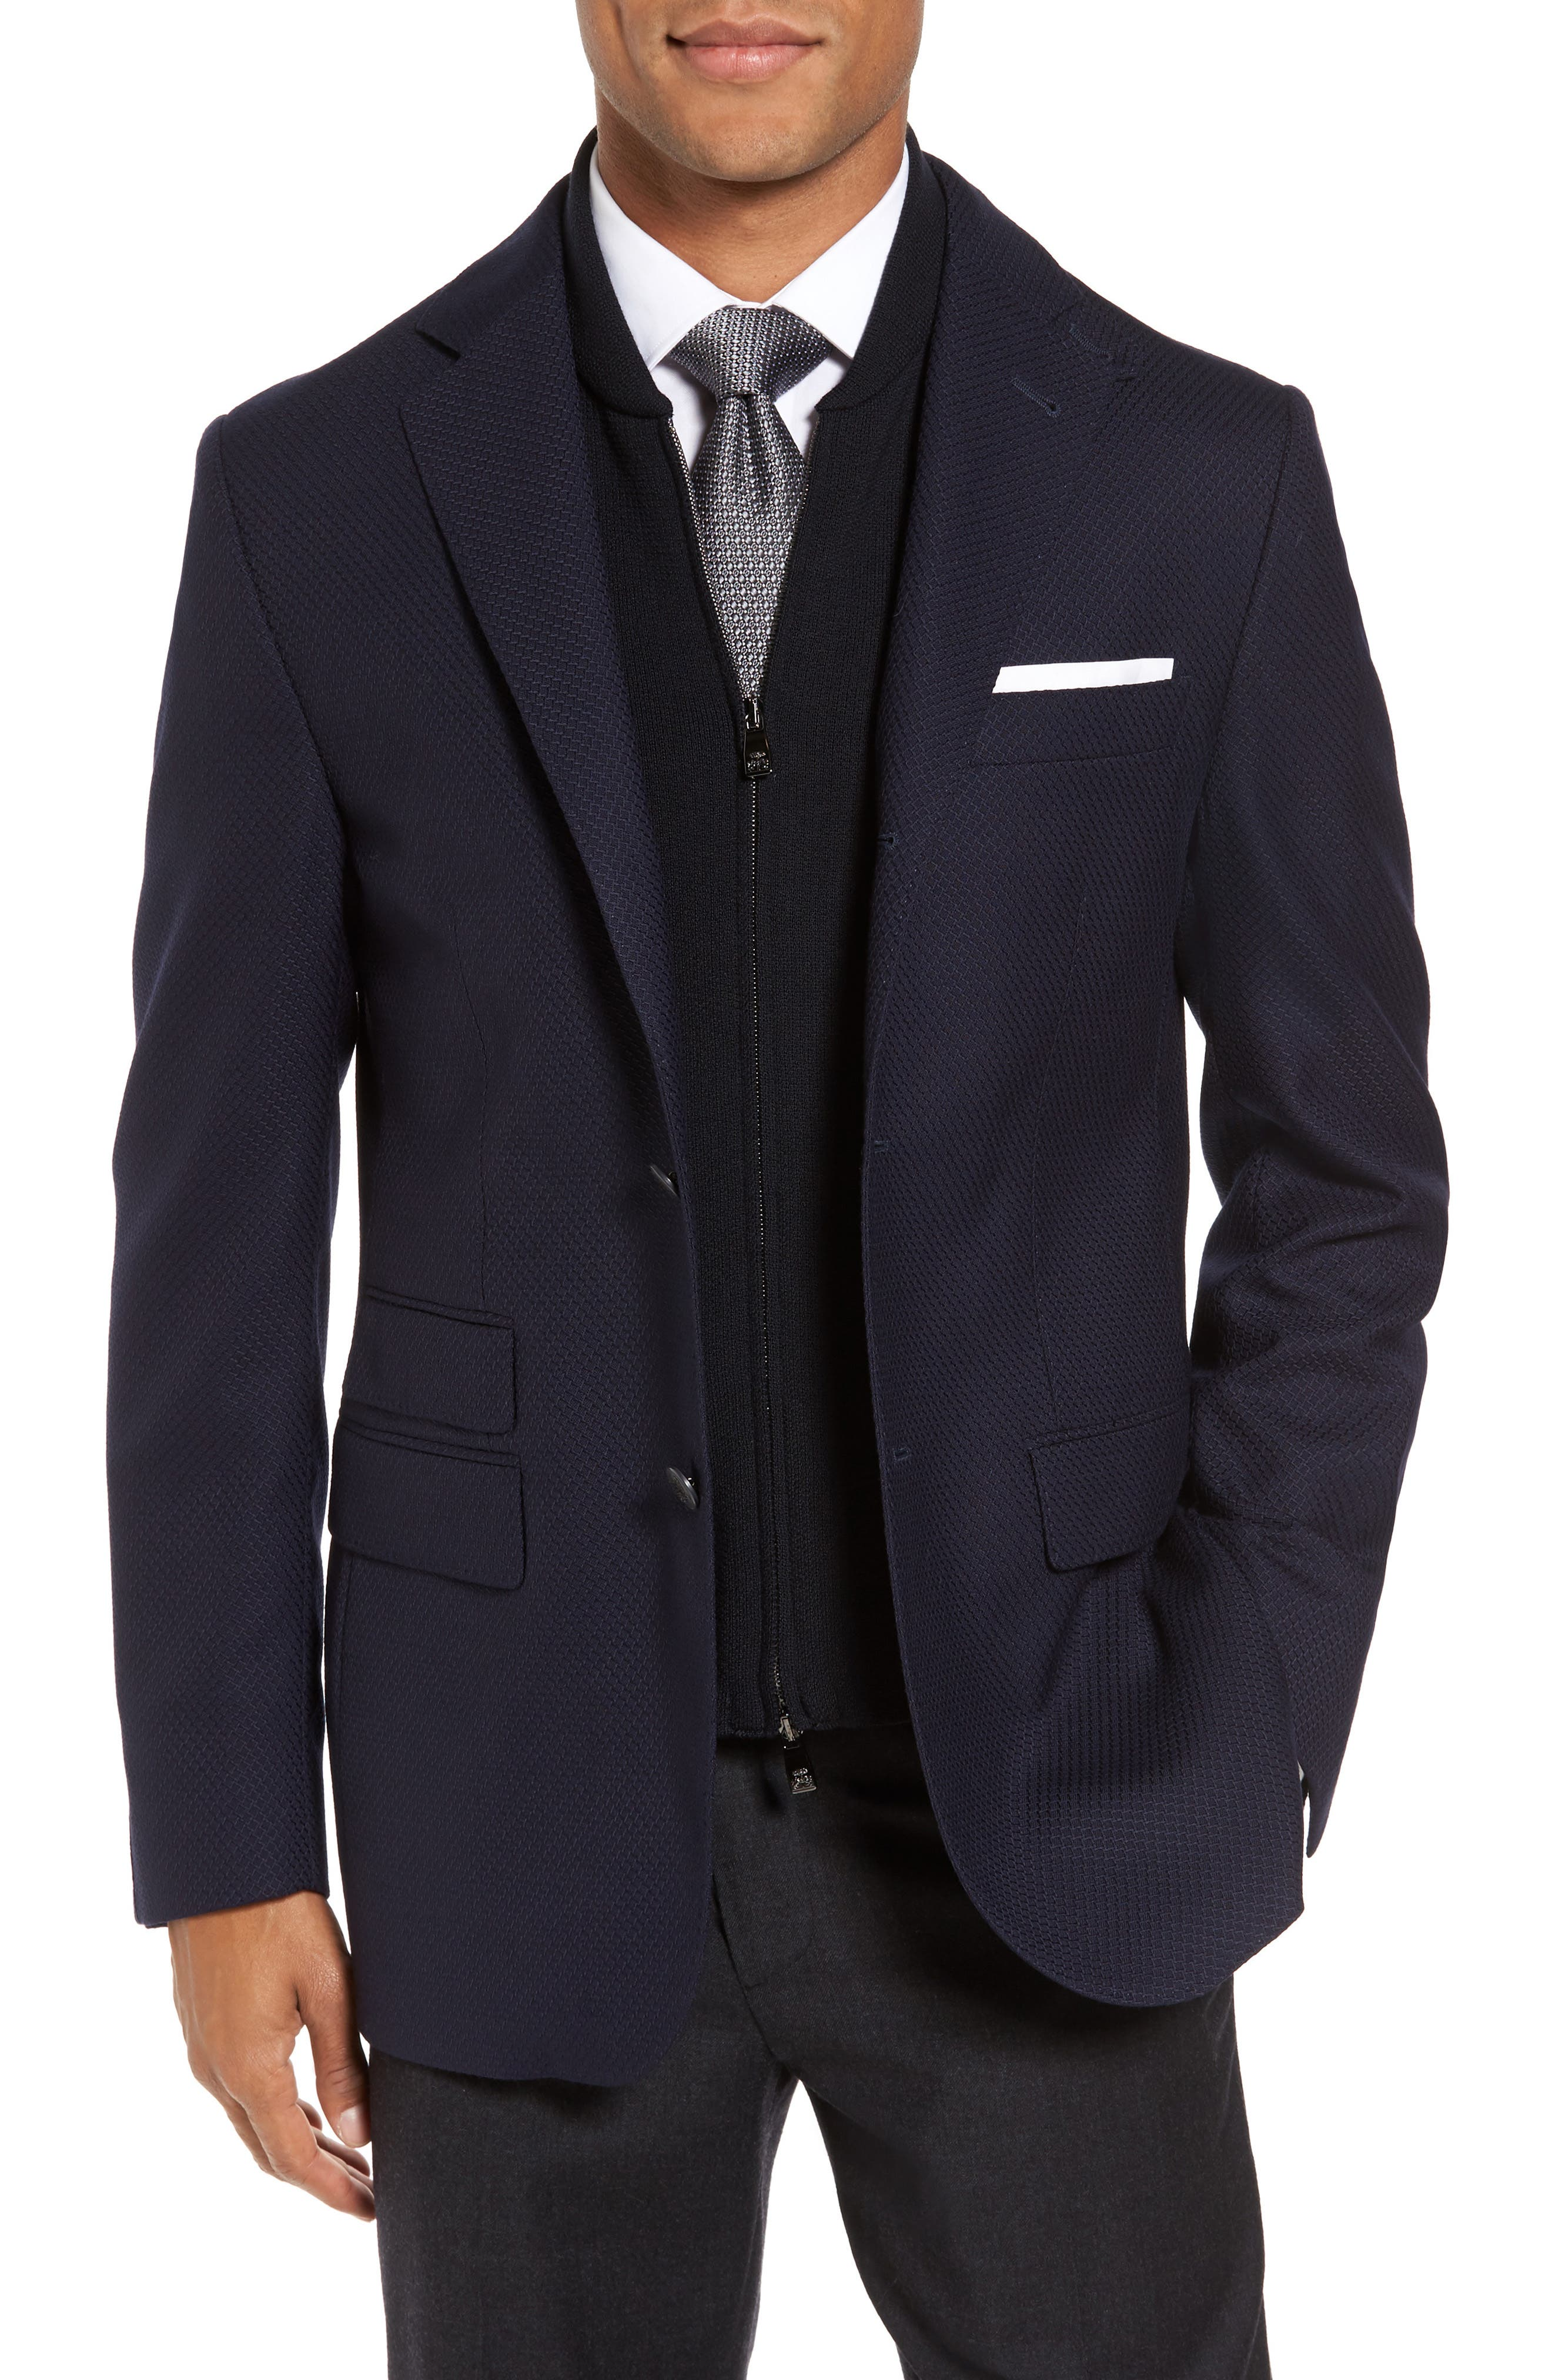 ID Classic Fit Wool Jacket,                             Main thumbnail 1, color,                             Ink